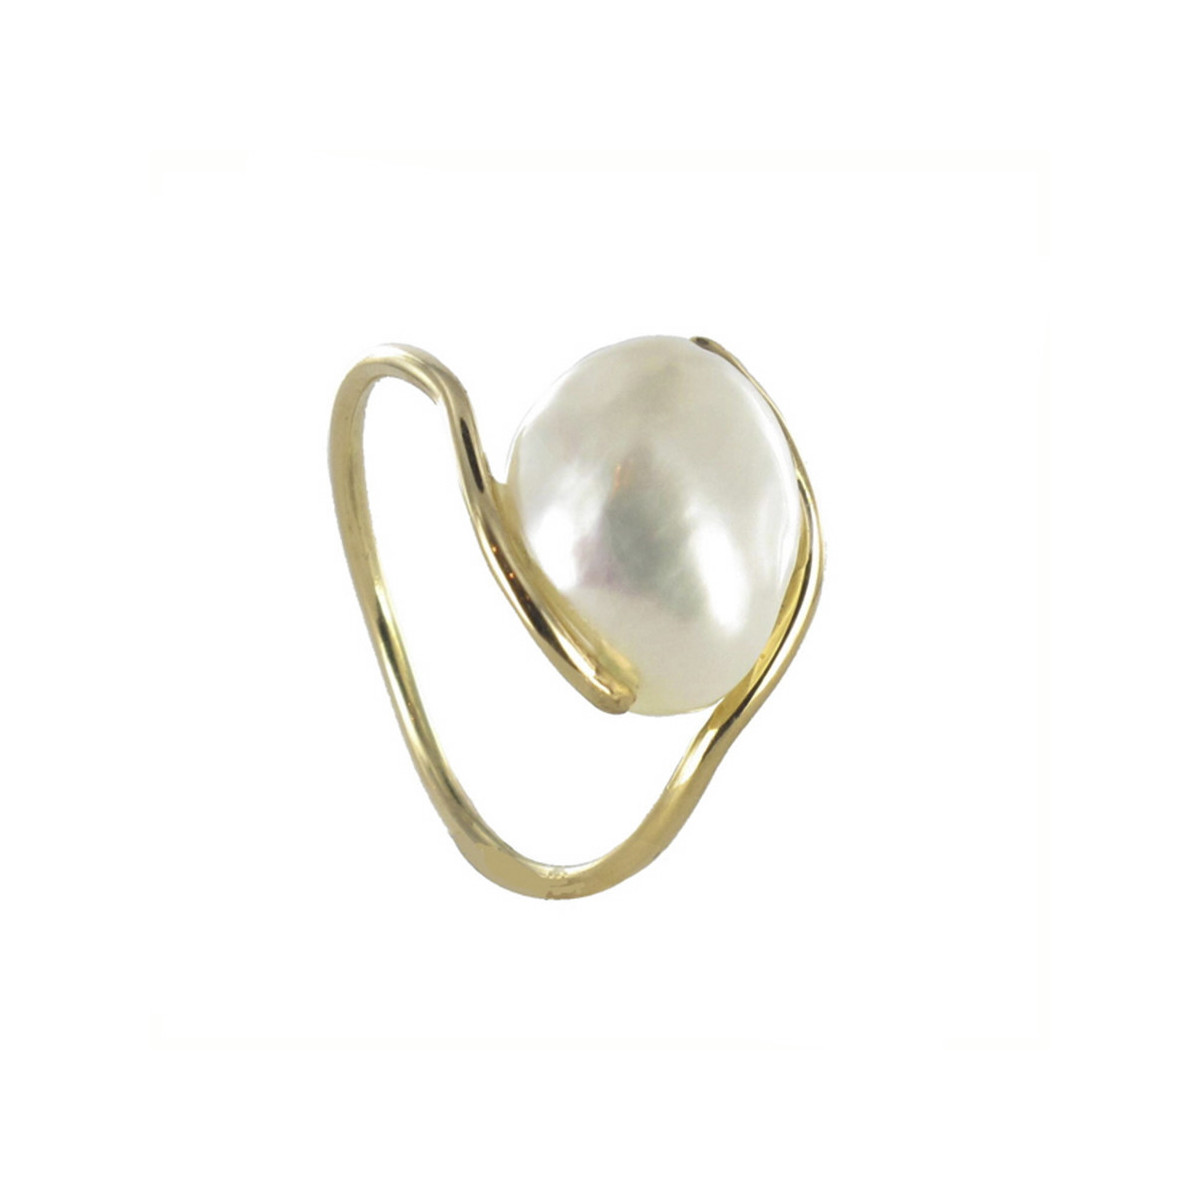 FINE THREAD GOLD RING WITH PEARL